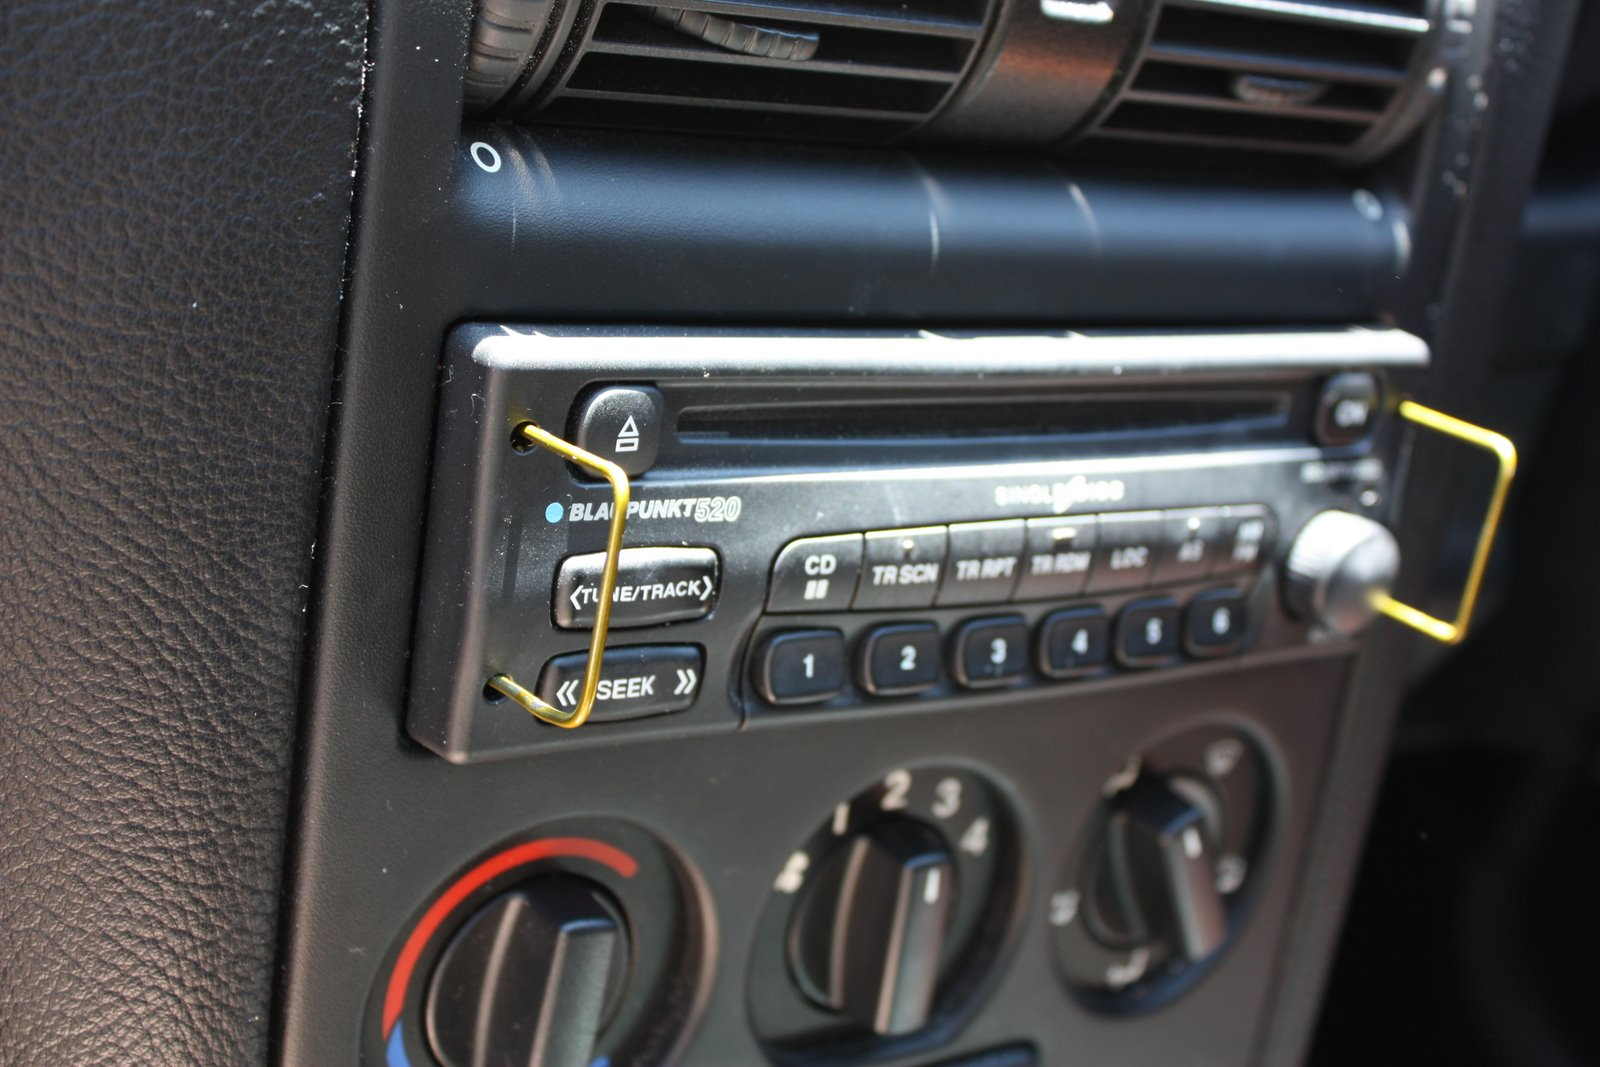 Step 2: Makeshift stereo removal keys